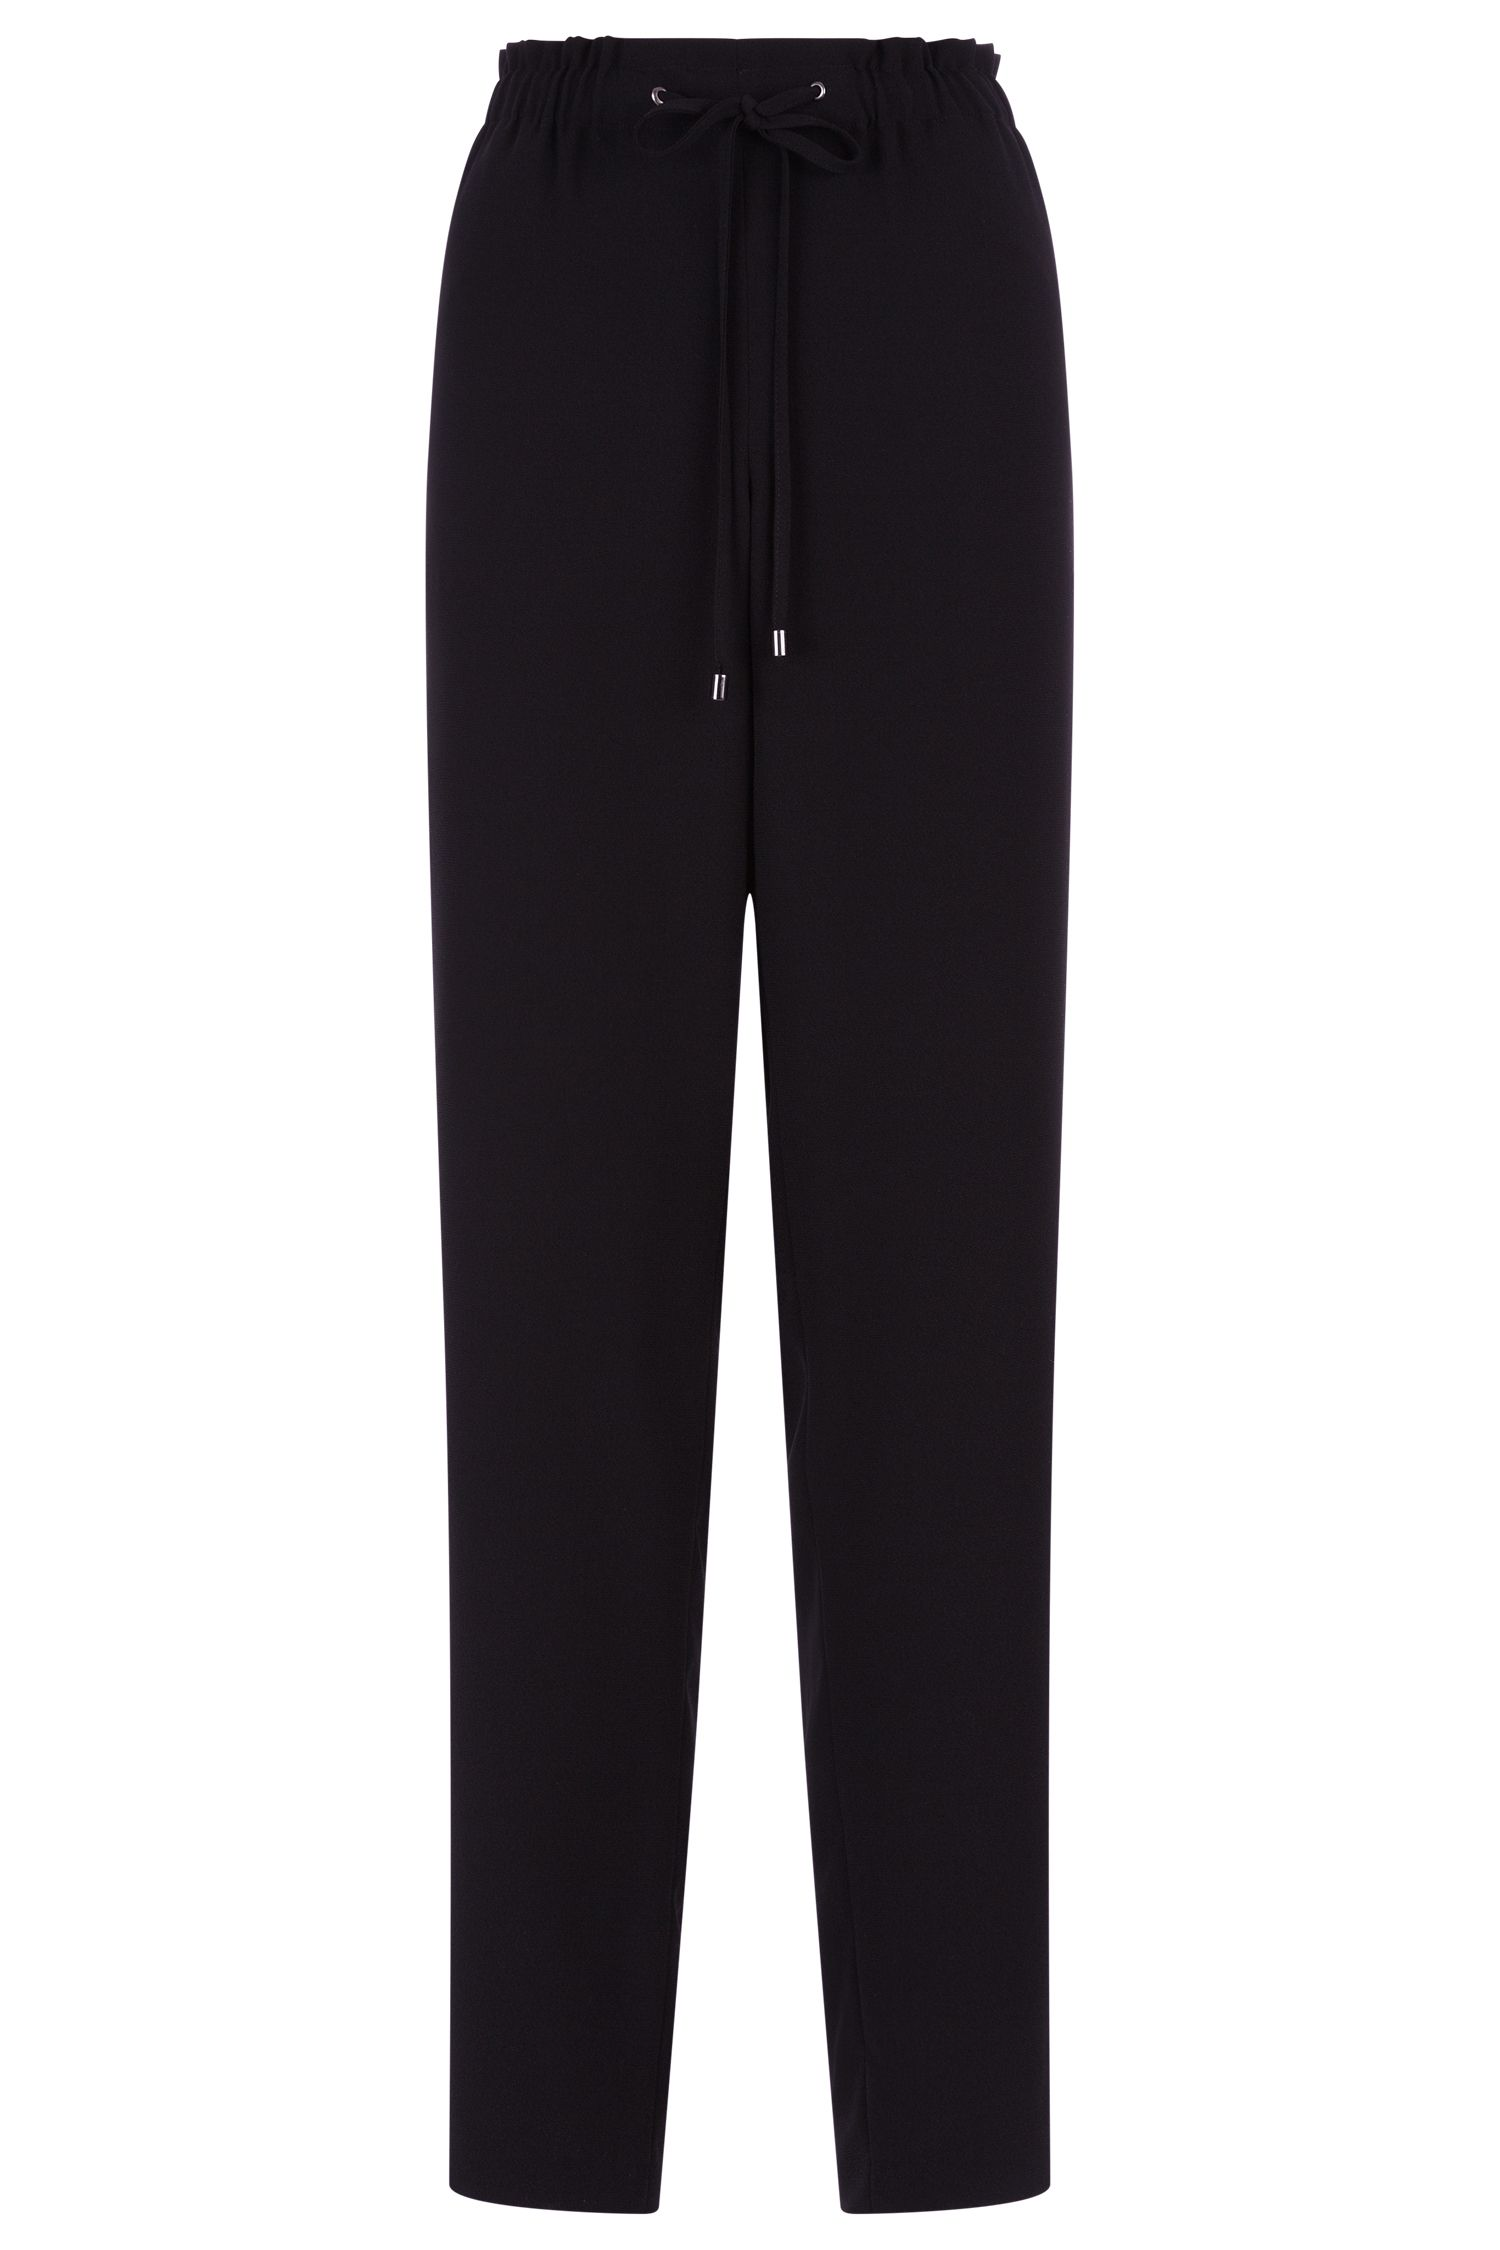 Fenn Wright Manson Paris Trouser, Black